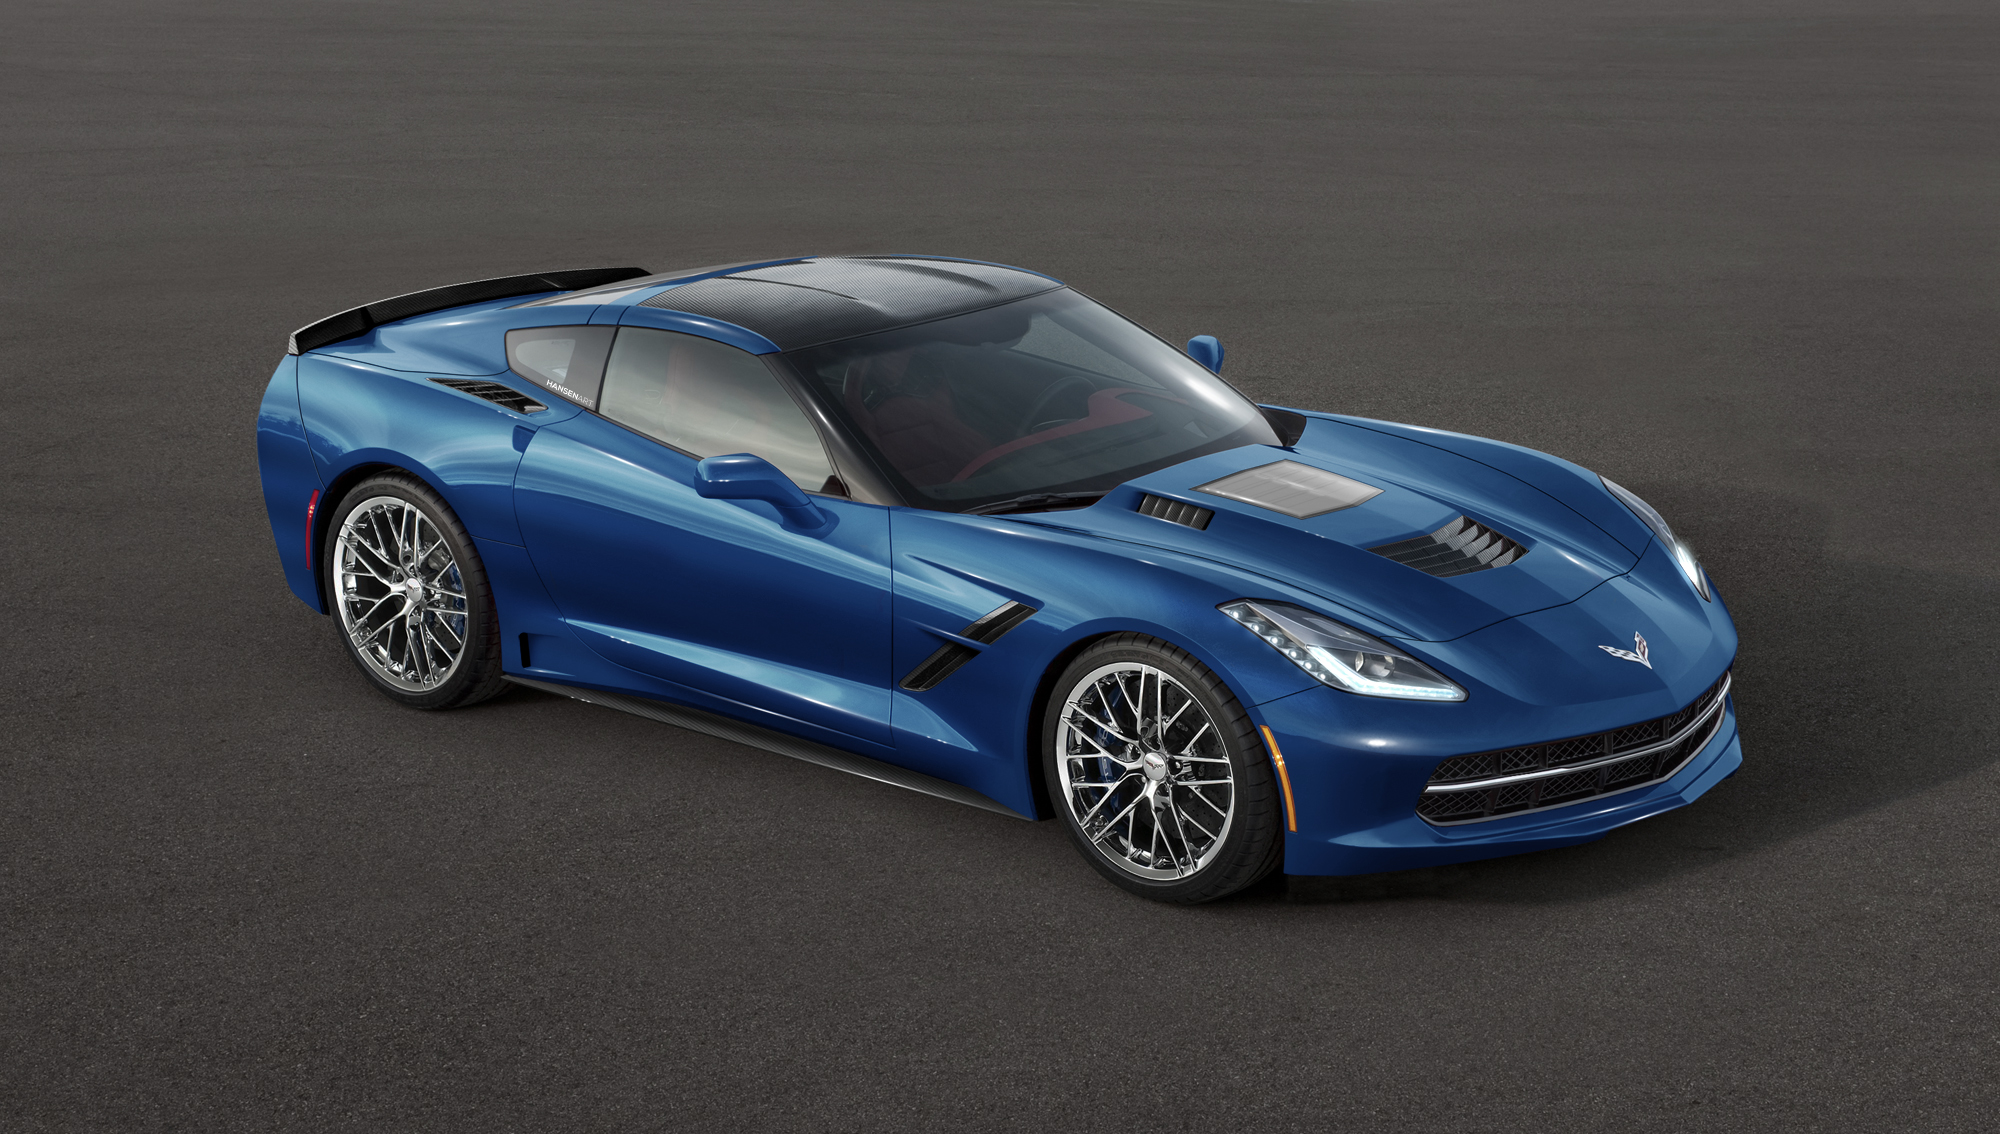 2015 corvette c7 zr1 front side view by ilpoli on deviantart. Cars Review. Best American Auto & Cars Review